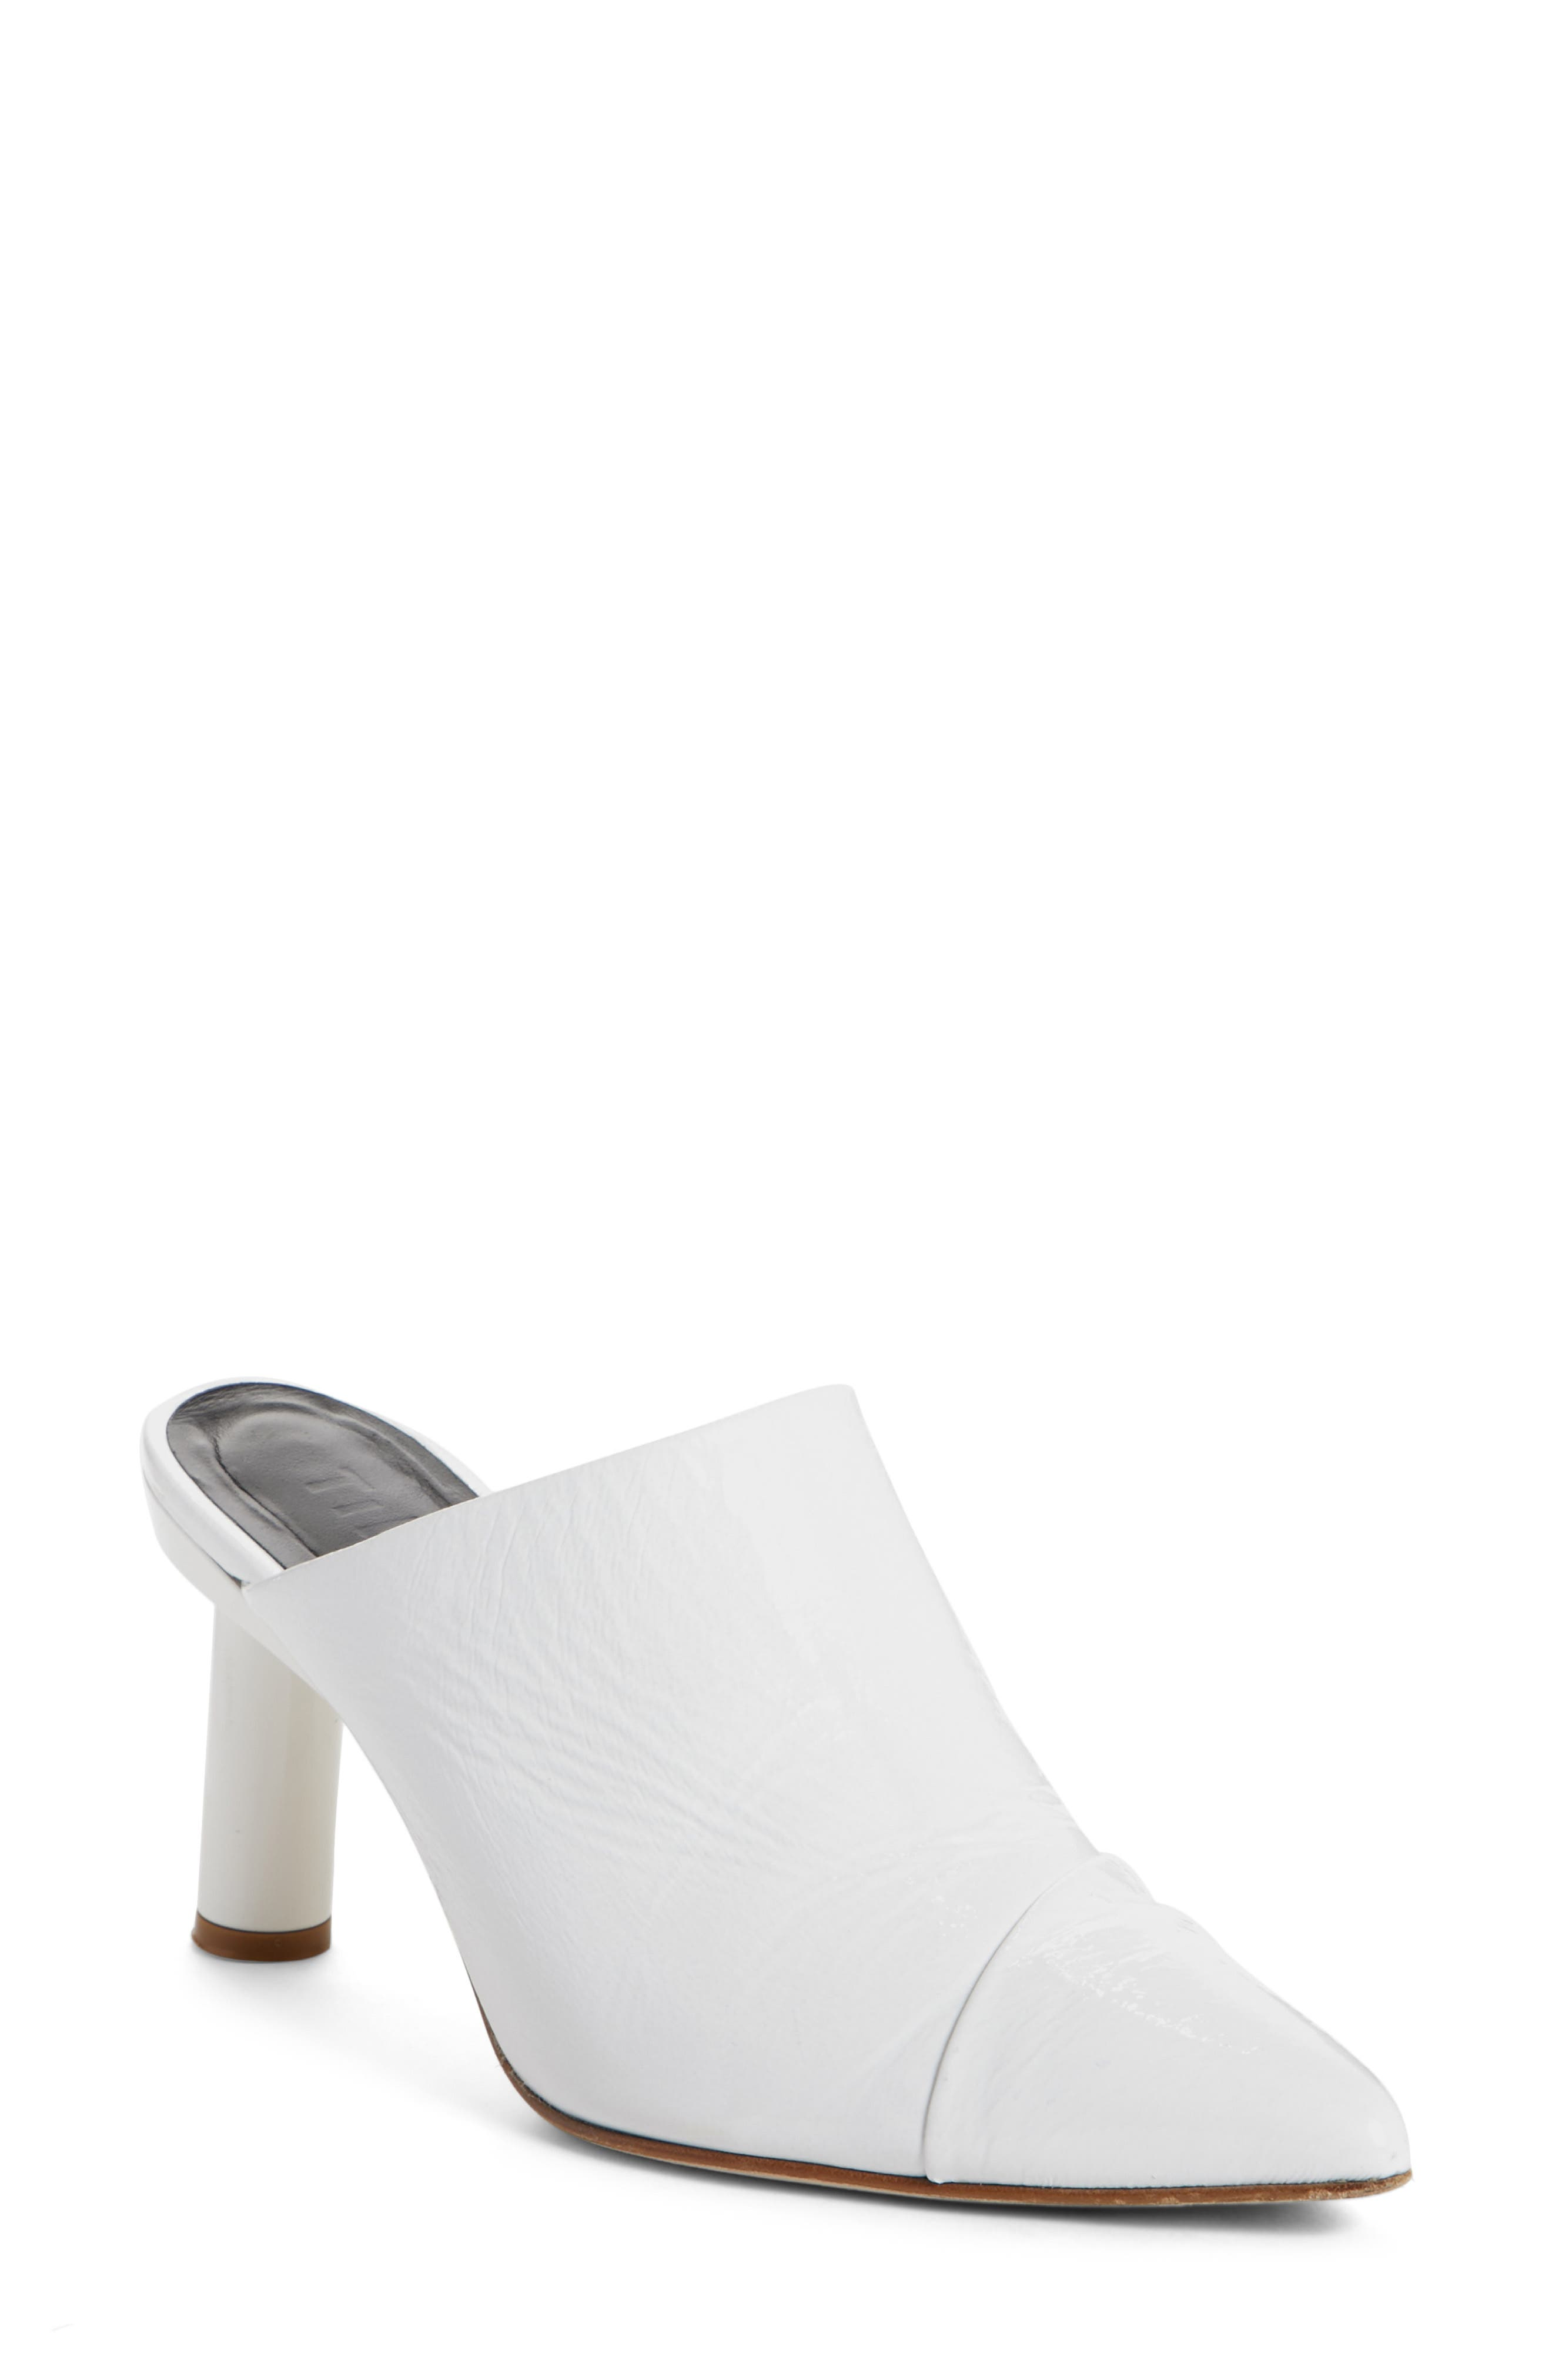 Liam Pointy Toe Mule,                             Main thumbnail 1, color,                             Bright White